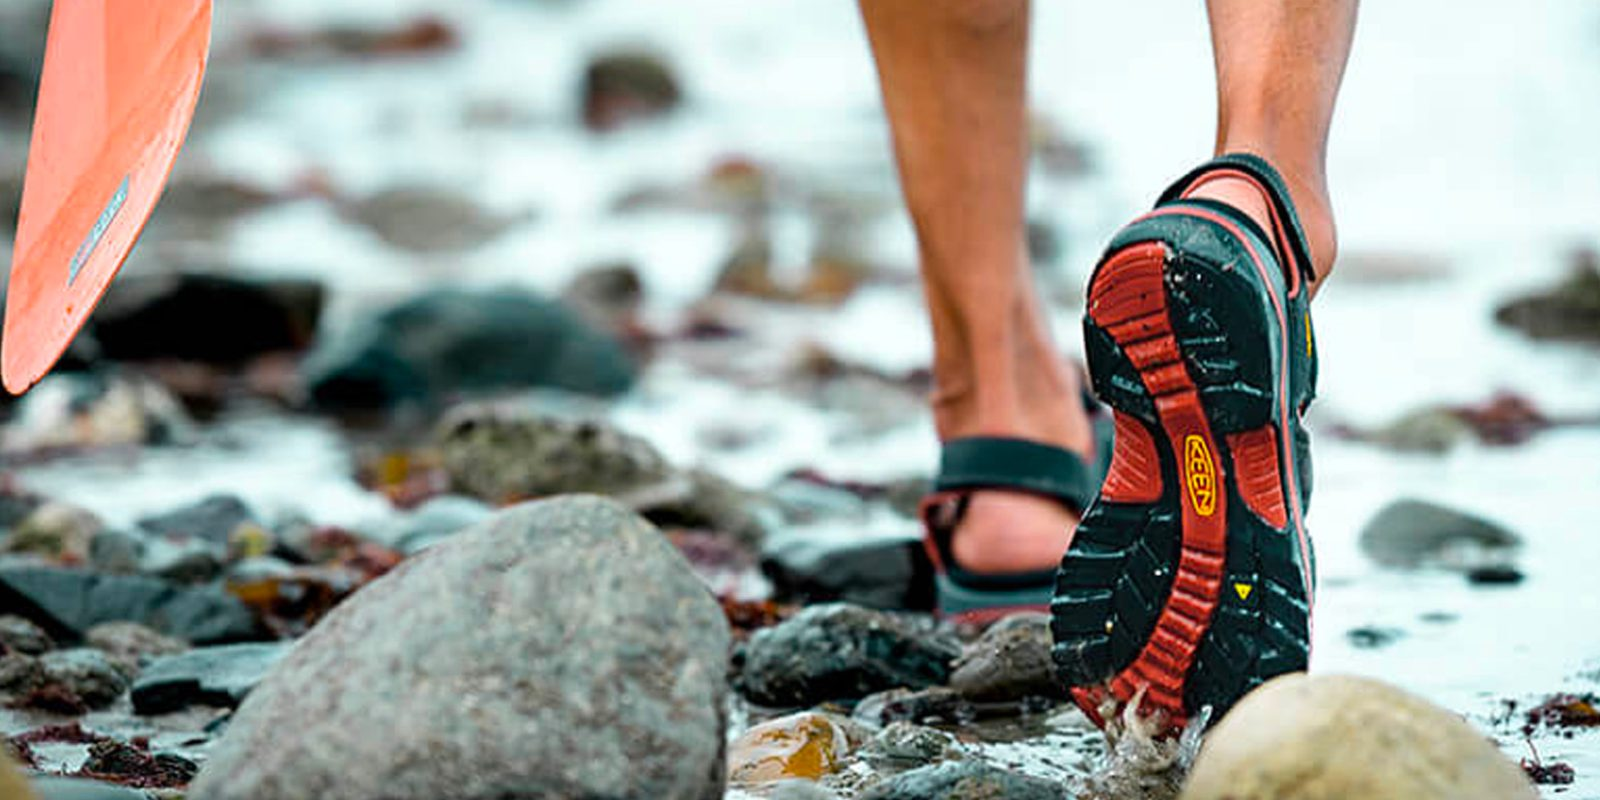 KEEN, ECCO, Clarks, more up to 50% off just in time for summer hiking